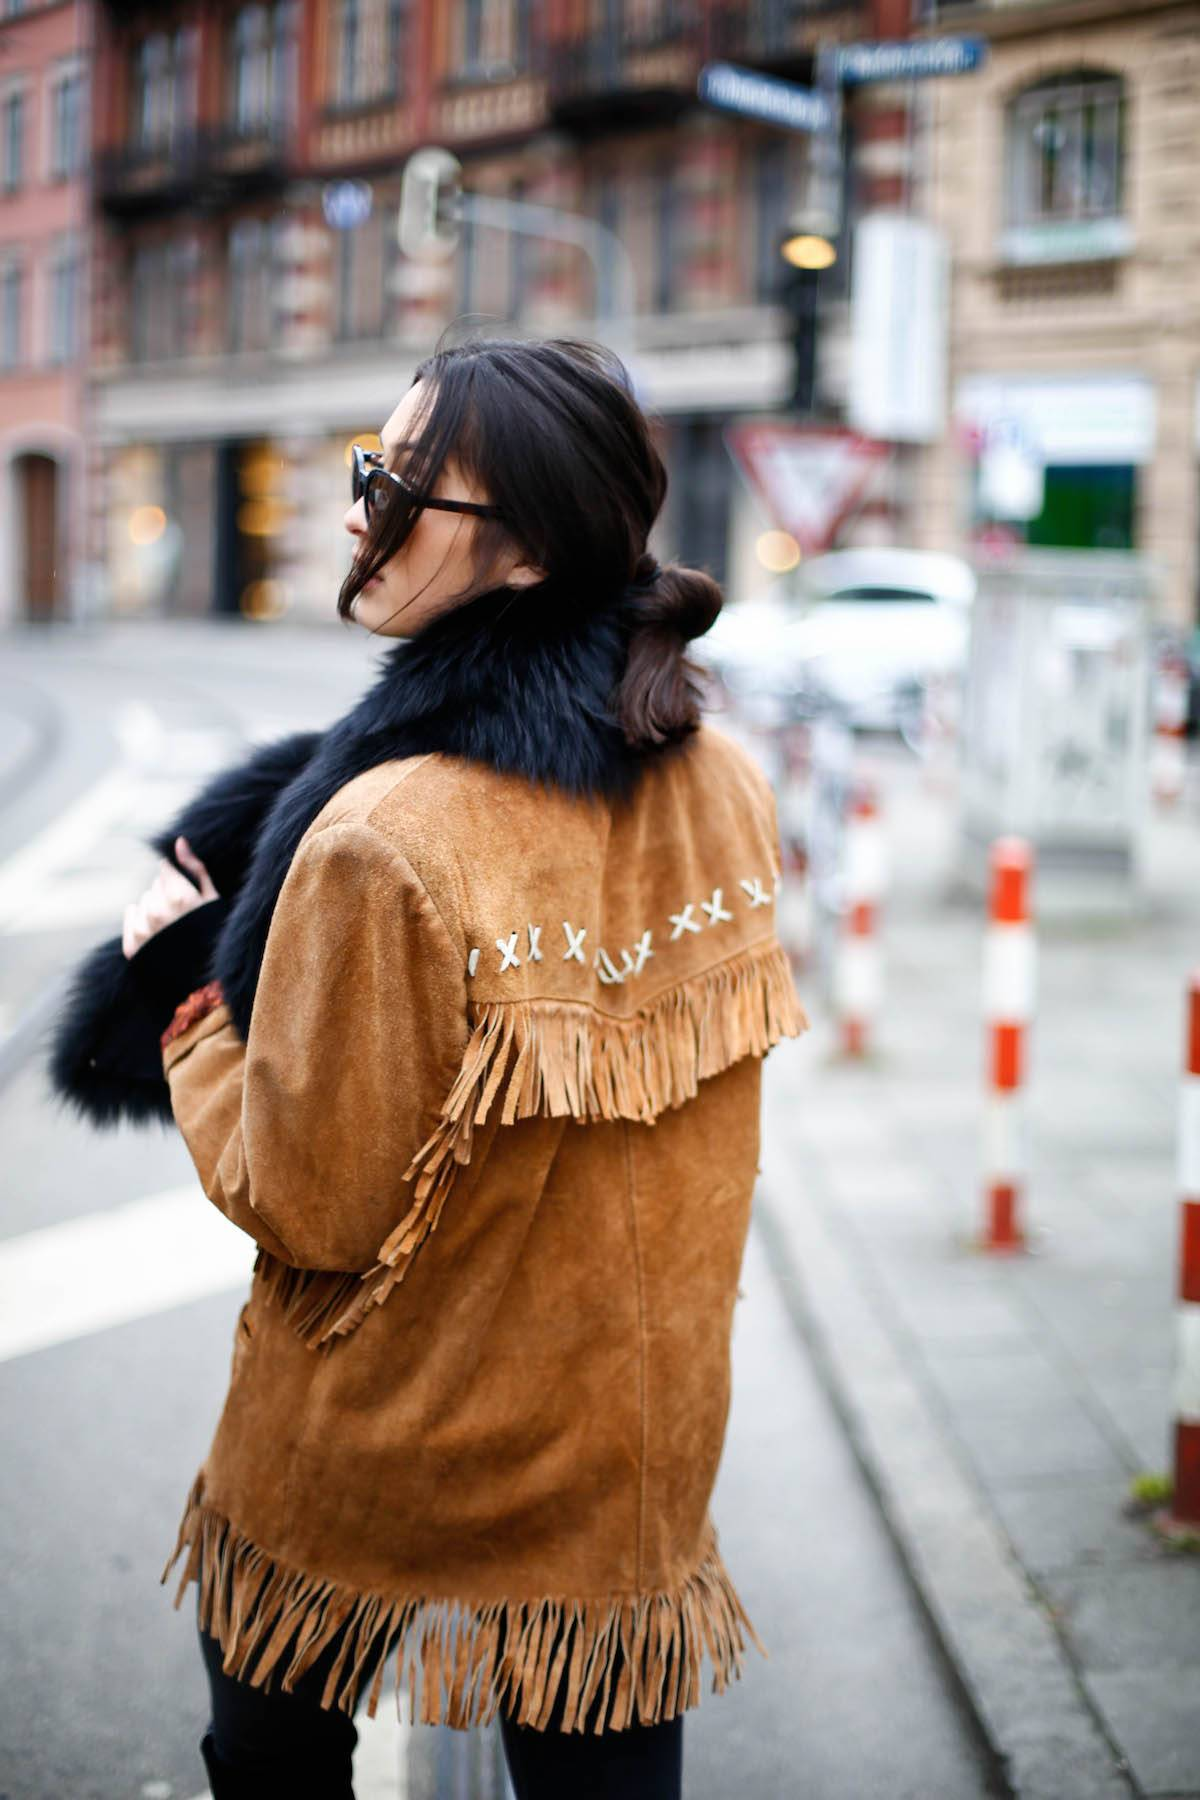 Fringed Jacket - Suede Leather - Vintage - Luxury - Overknees - Fur - Calvin Klein Sunnies - Fashionista - German Fashionblogger - Ootd - Streetstyle Munich - München Personal Style Blog - Isartor - Trends 2016